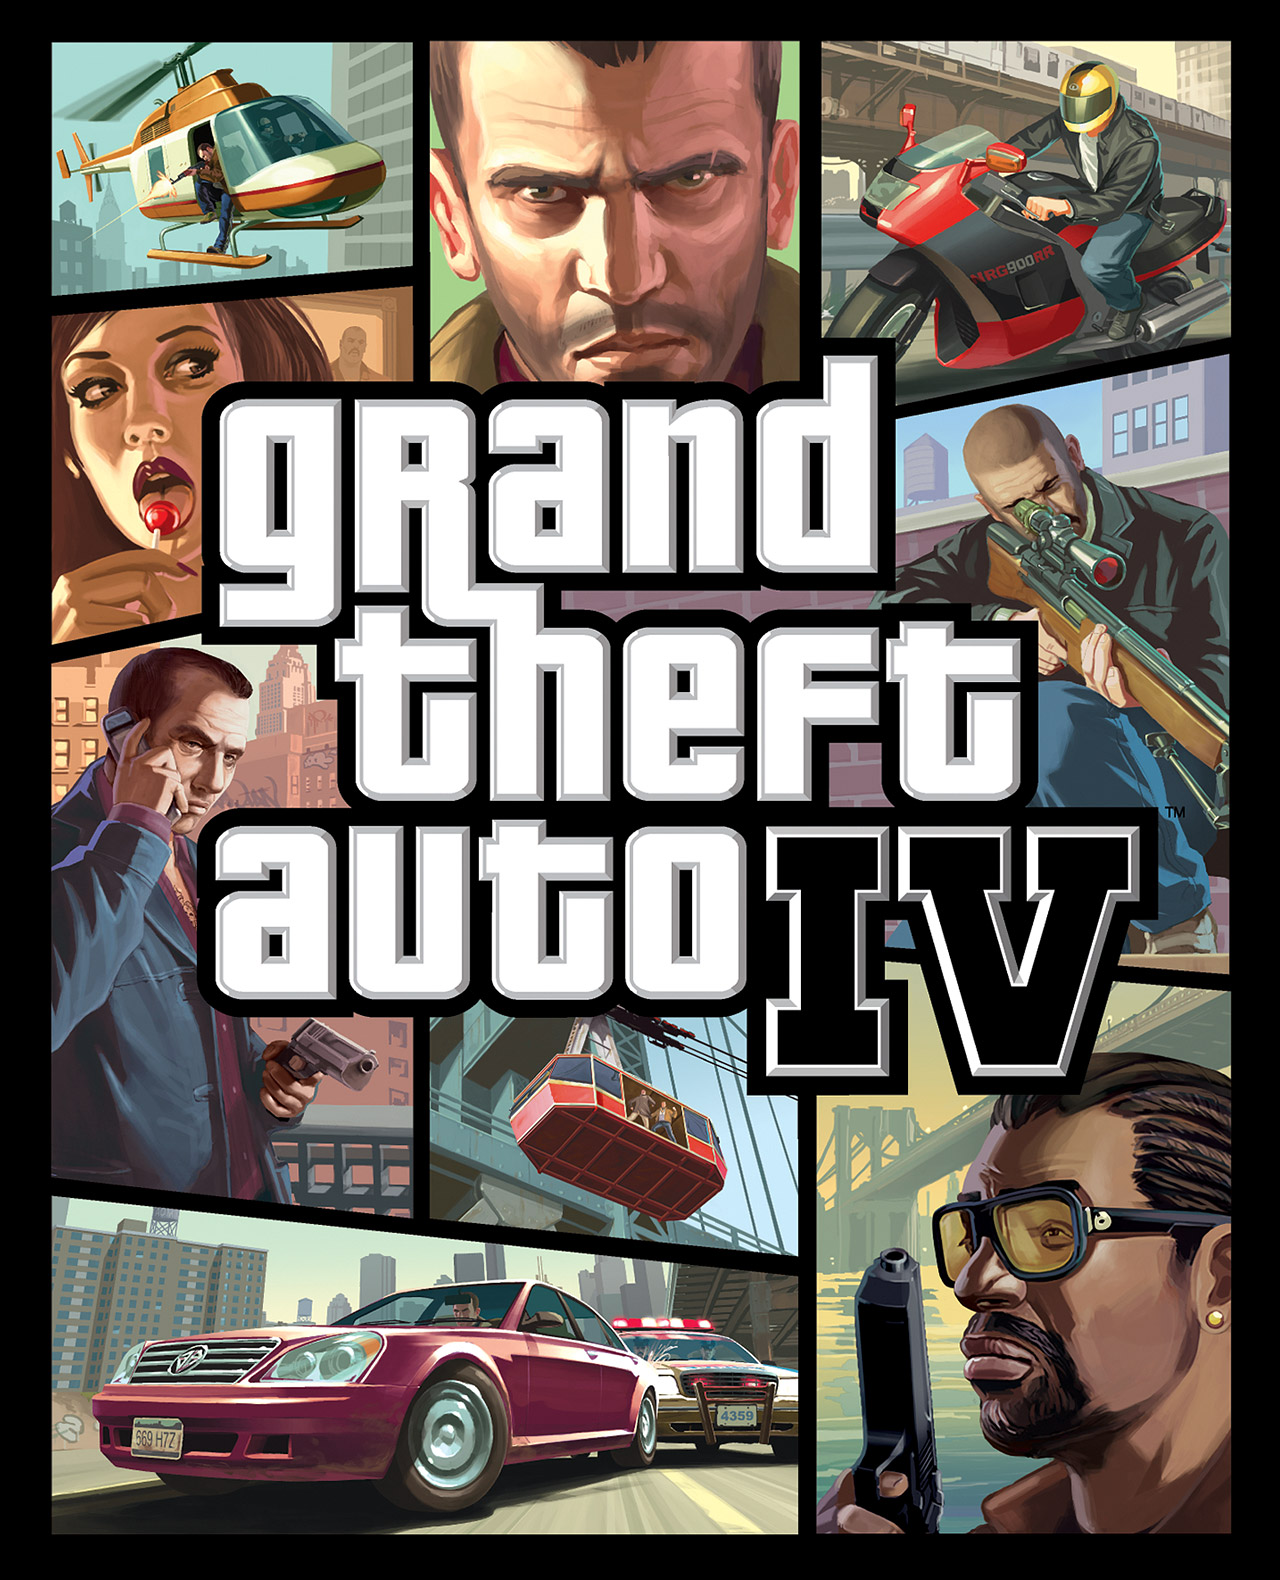 Grand theft auto 4 gta 4 trainer 1 0 7 0 episodes 1 1 2 0